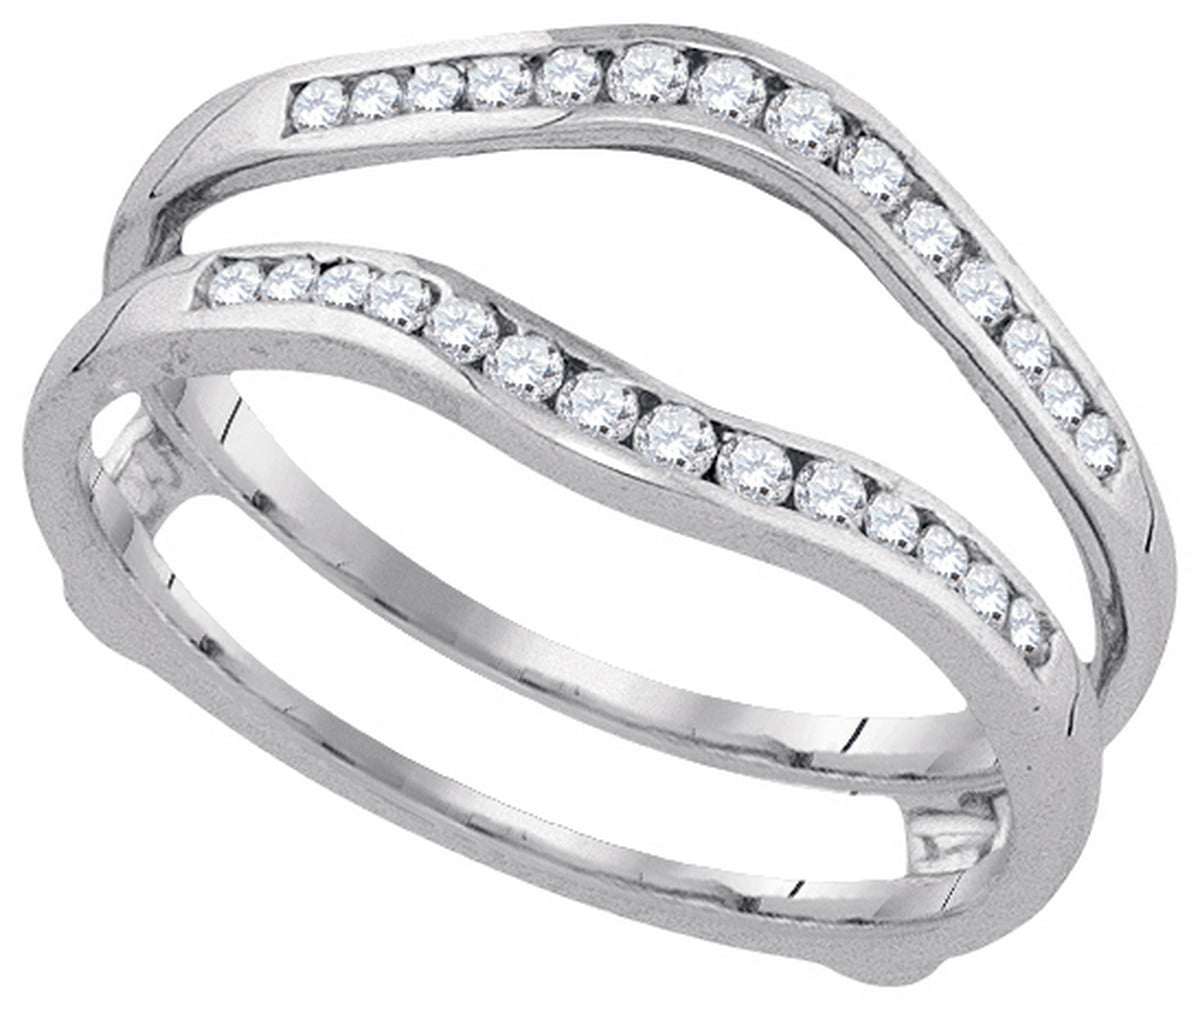 Mia S Collection 14kt White Gold Womens Round Diamond Ring Guard